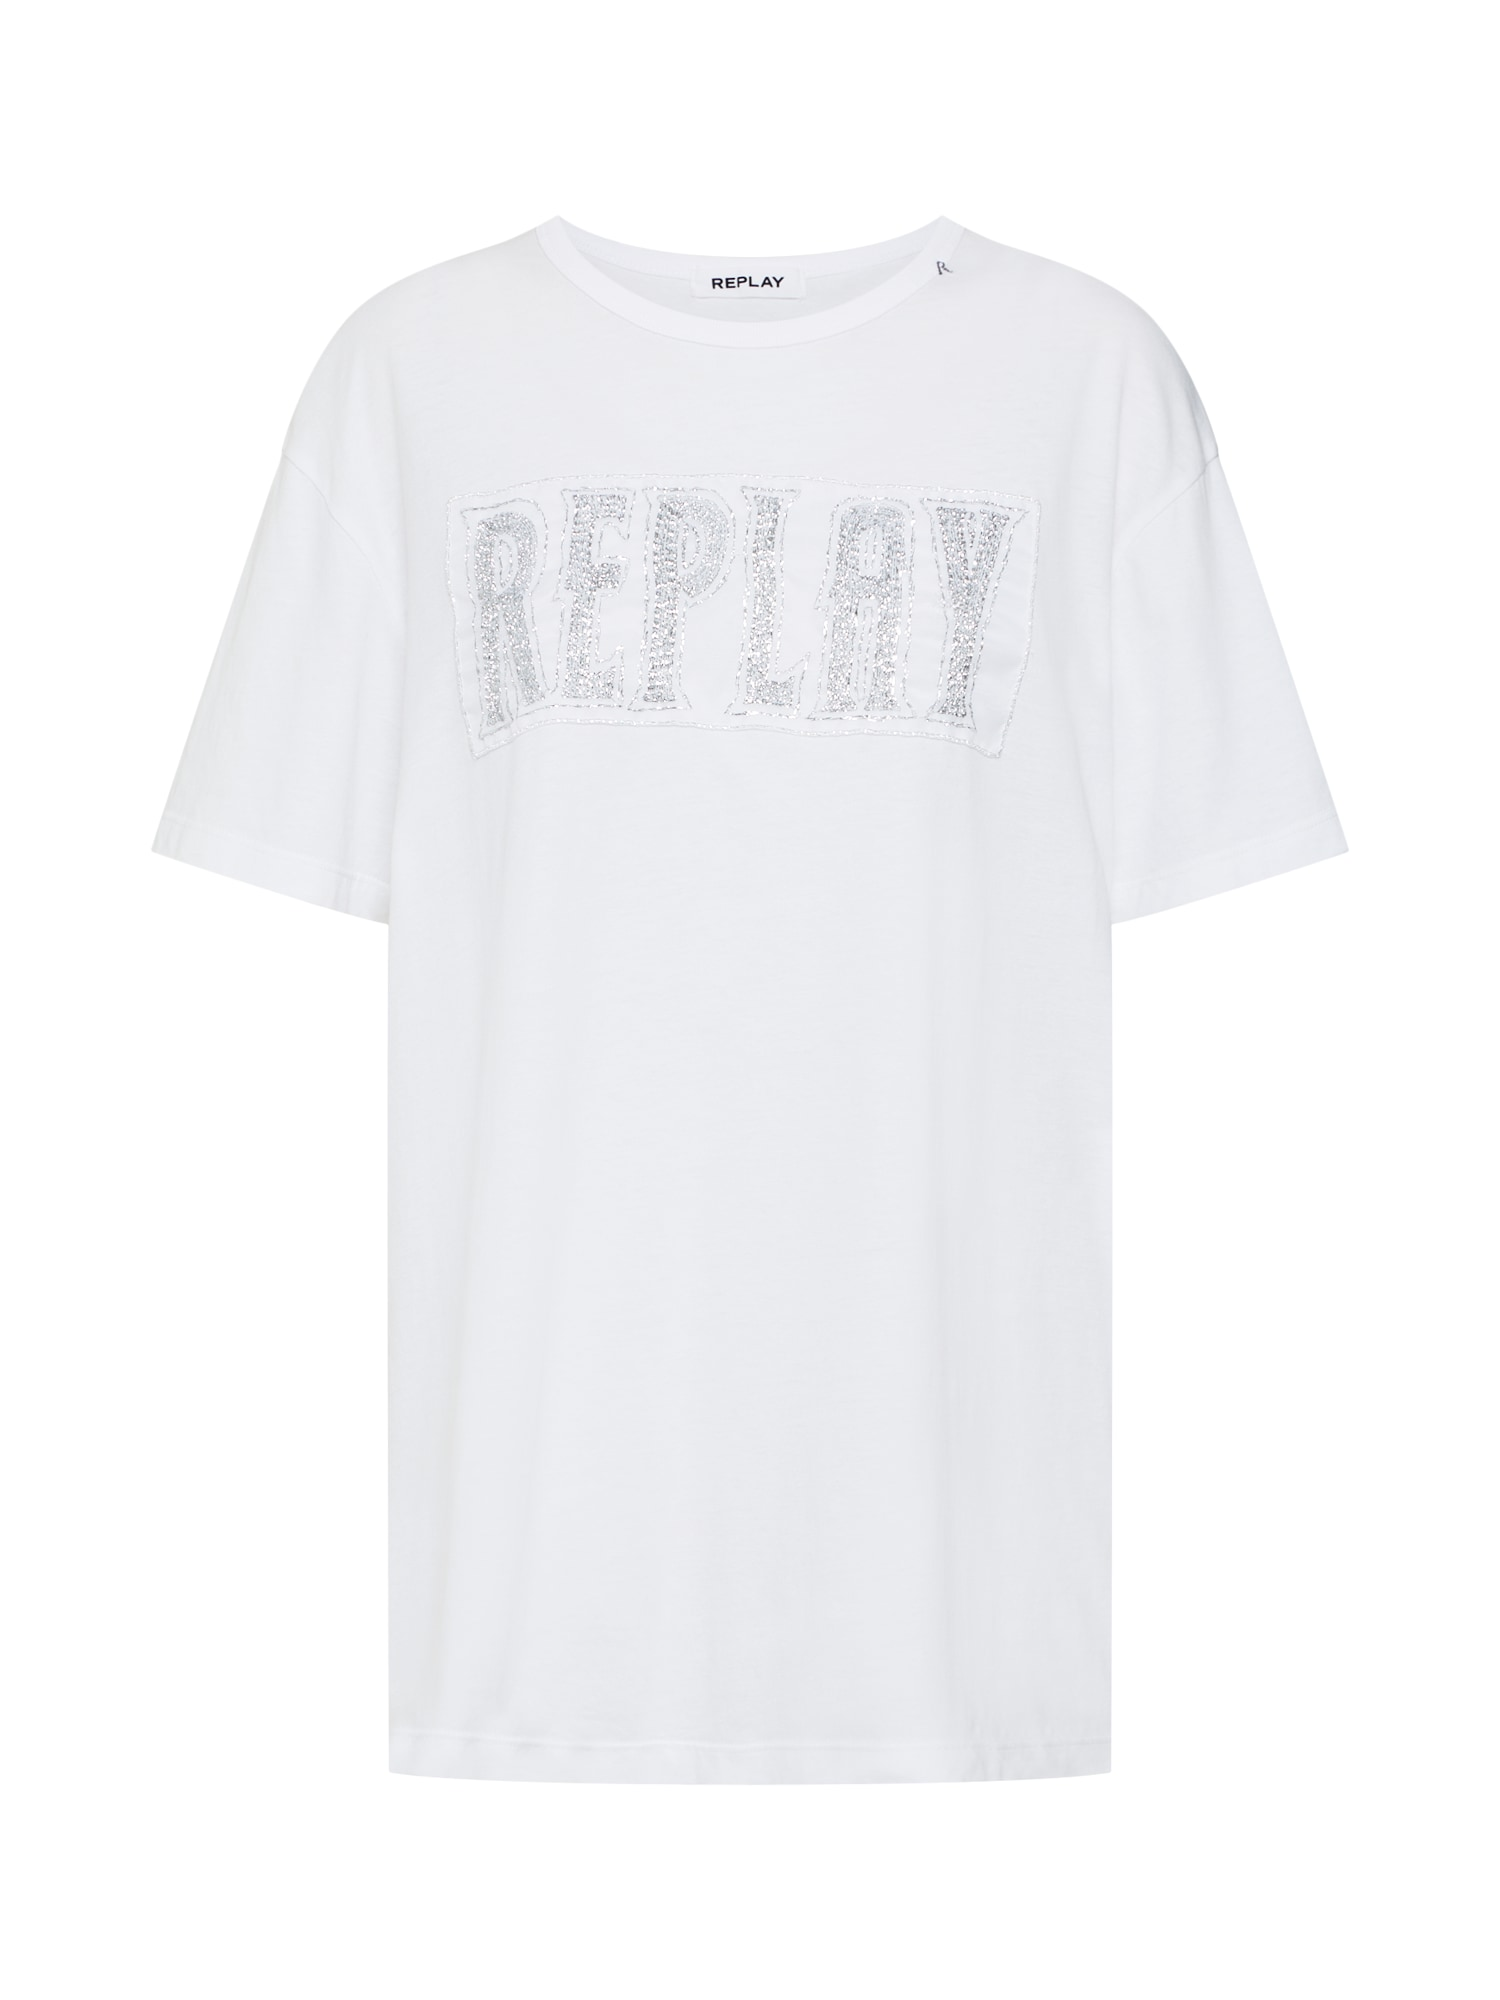 REPLAY Tricou  argintiu / alb